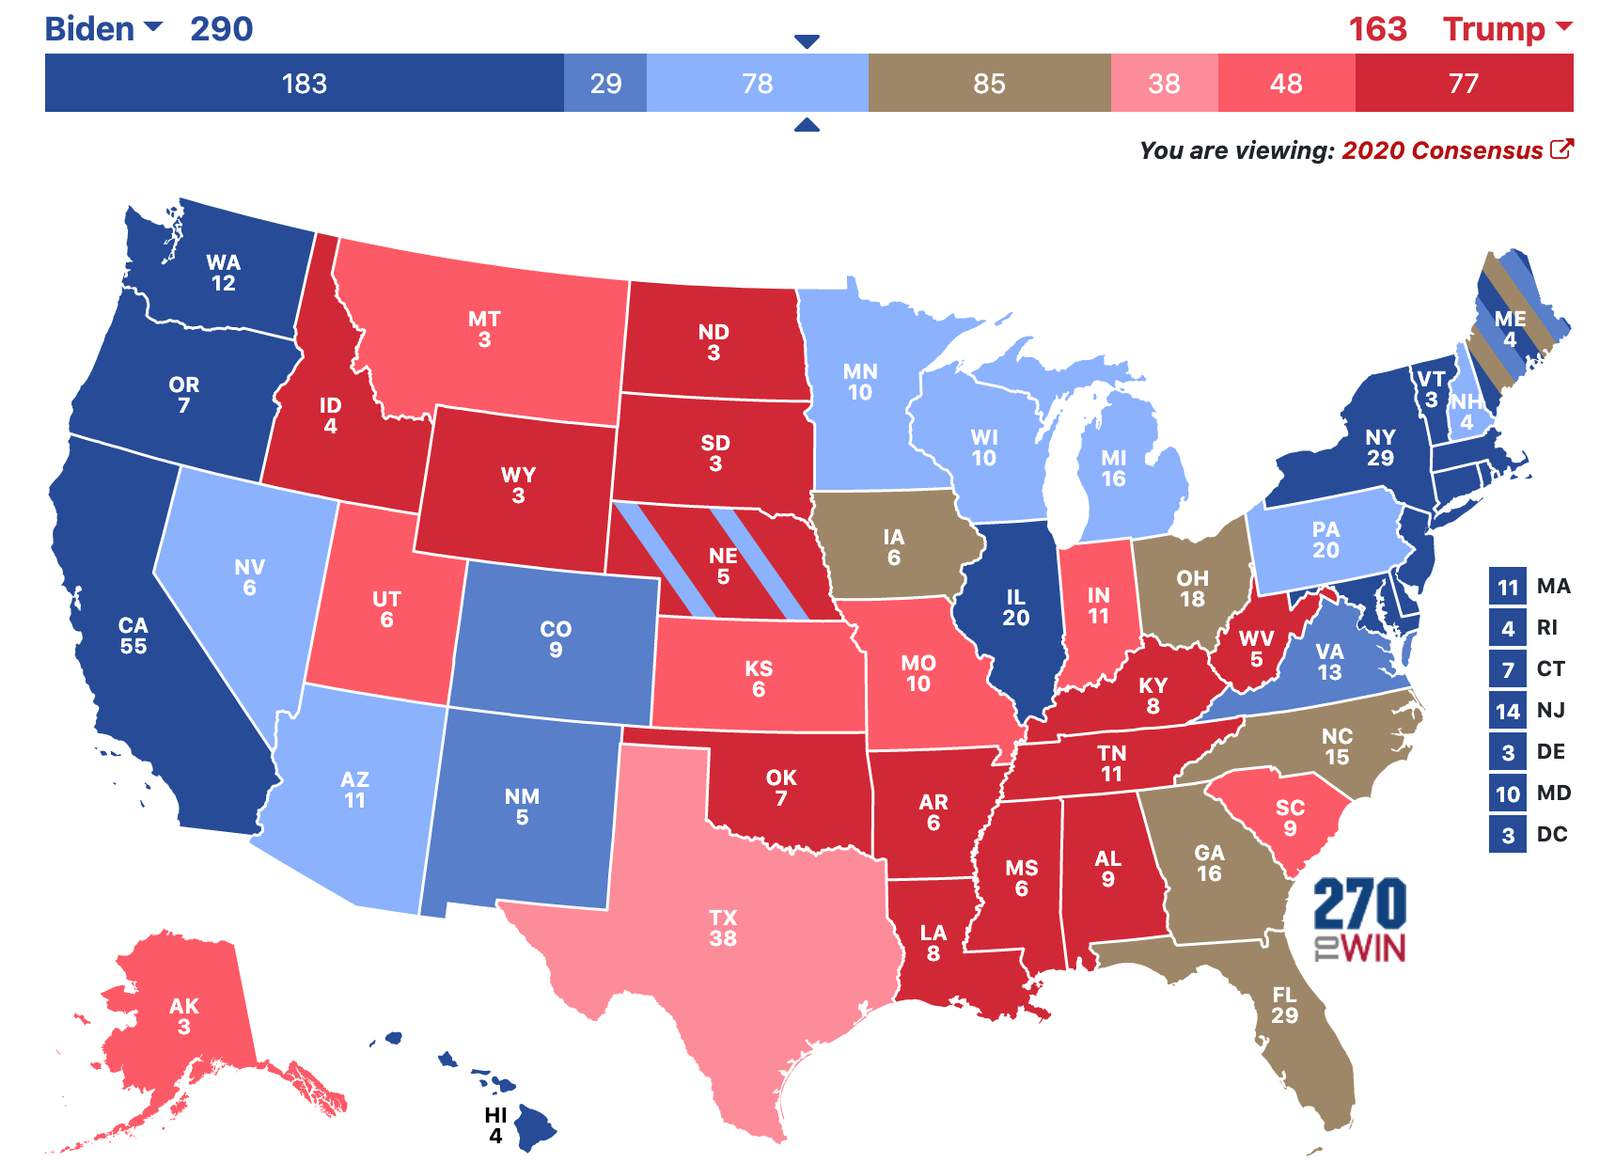 Us Electoral College Map 270 to Win: Interactive map allows you to predict 2020 Electoral